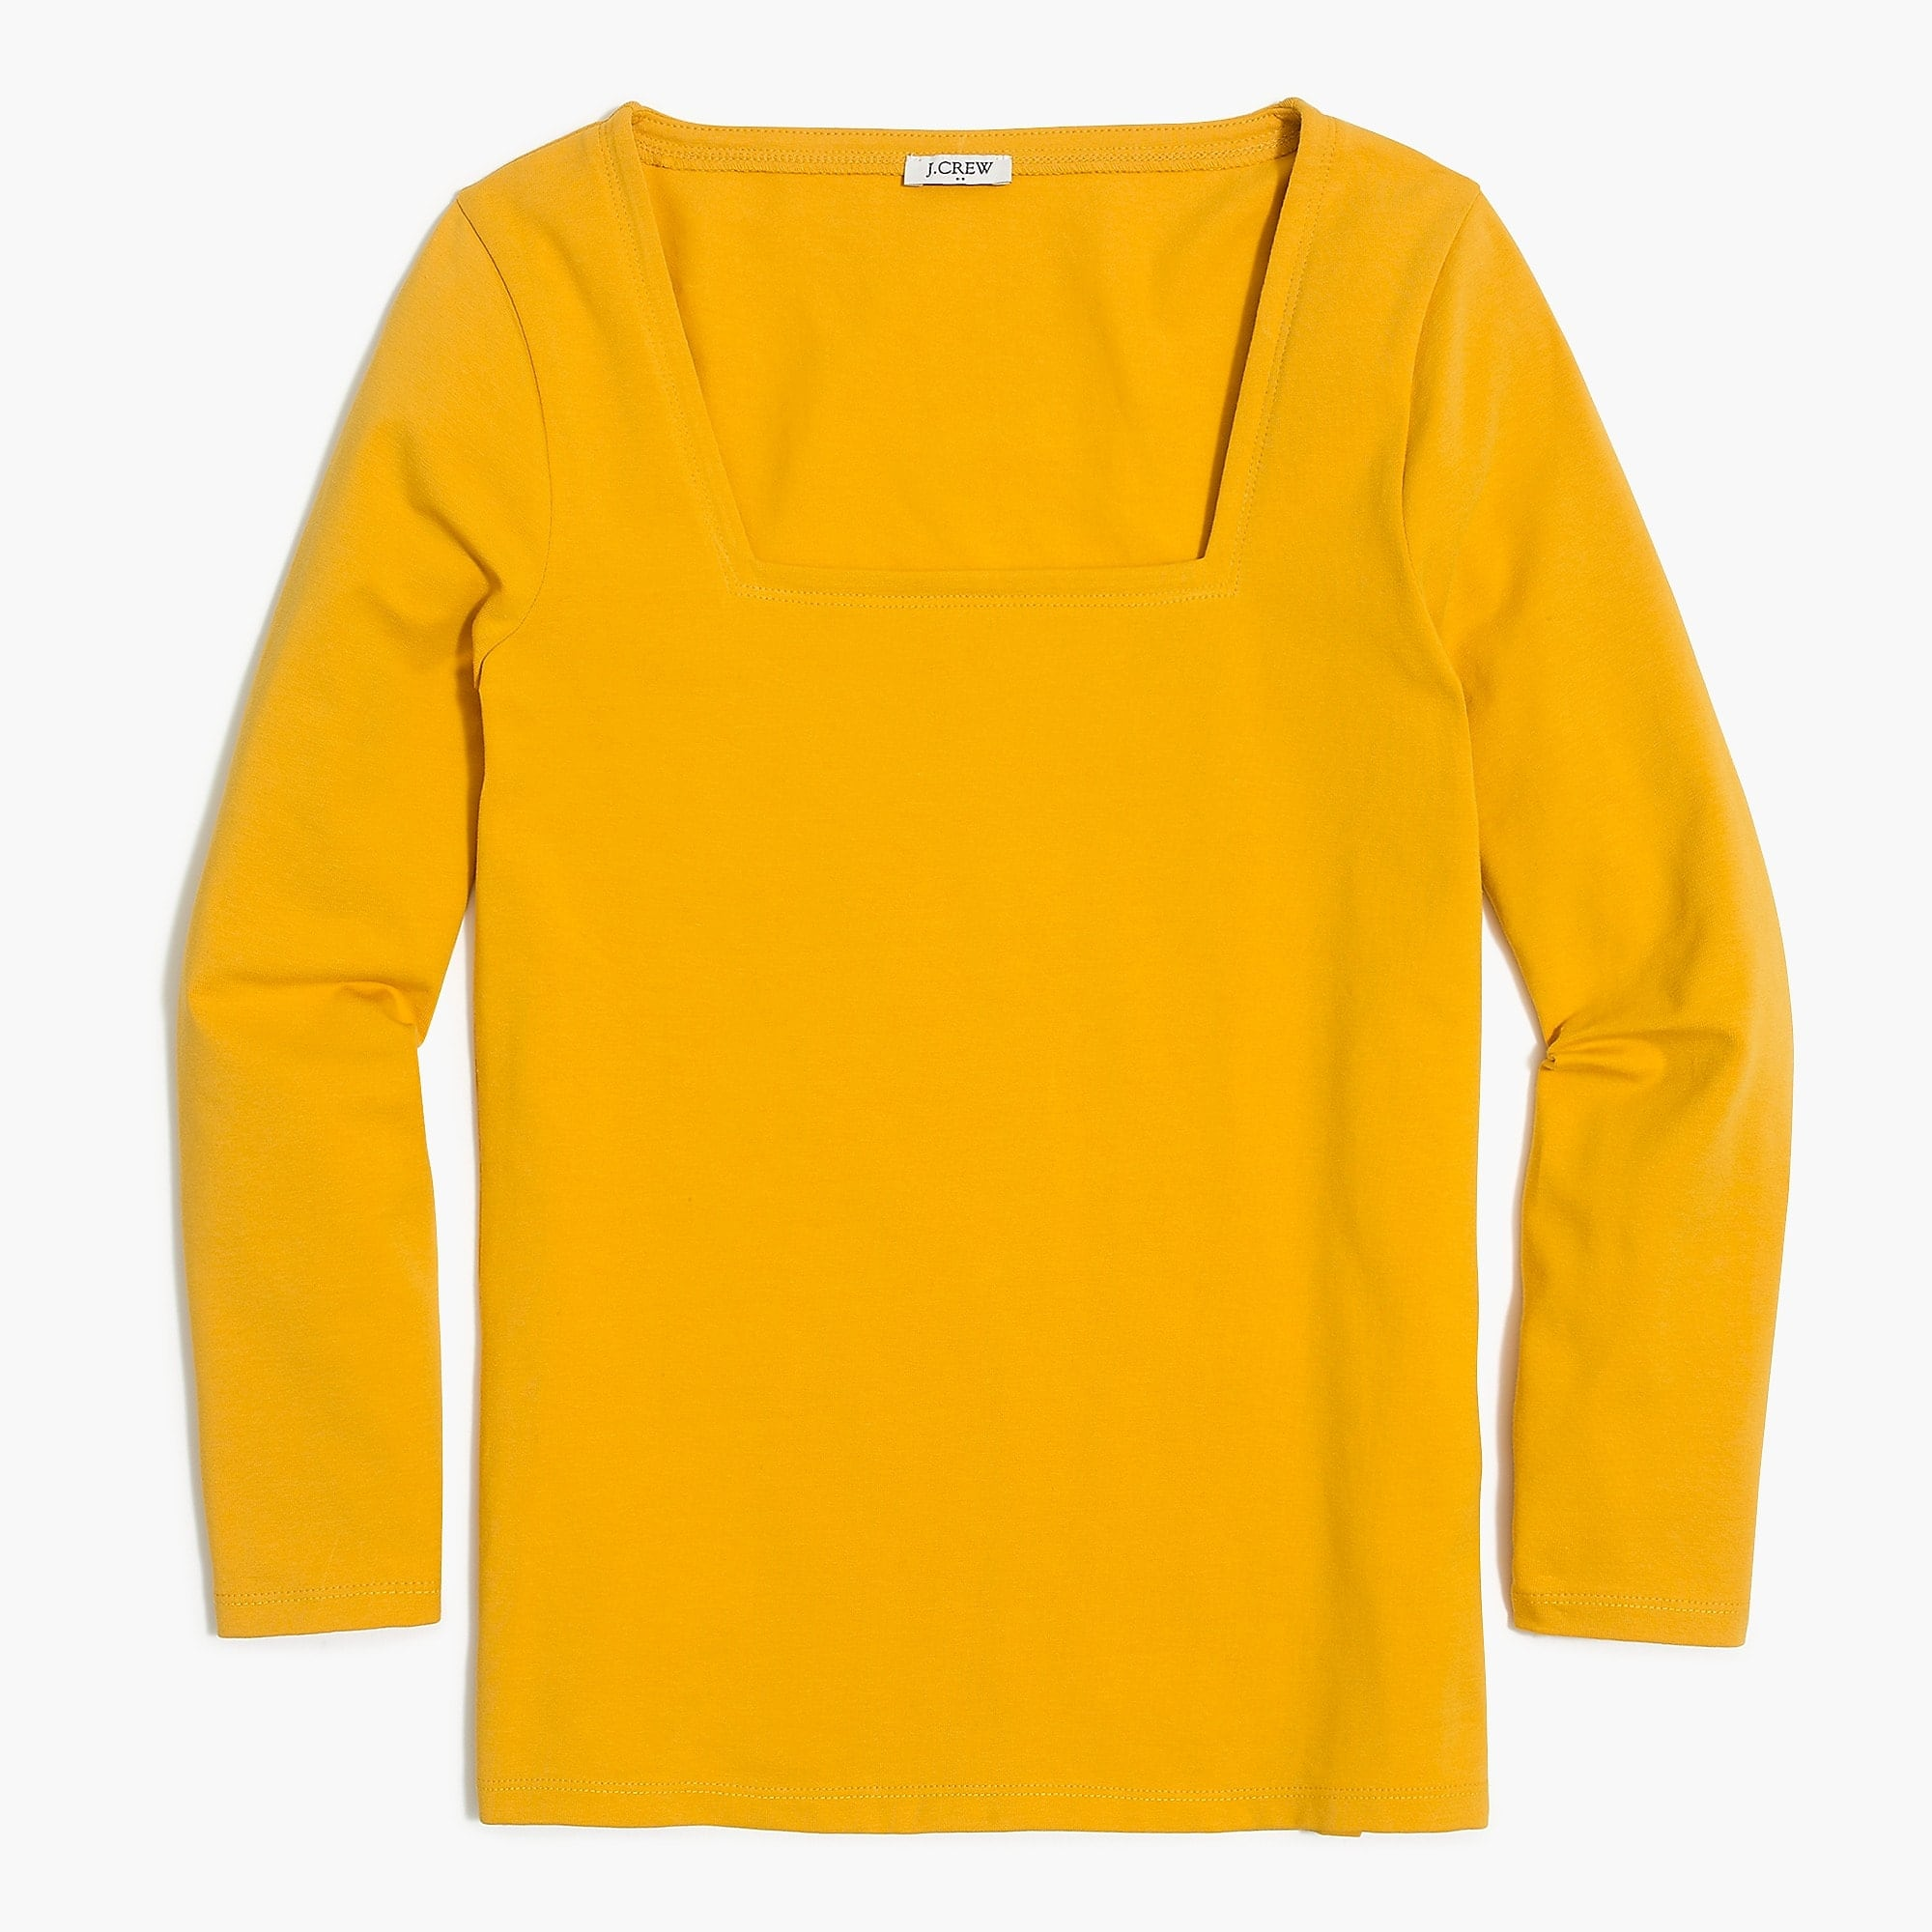 J. Crew Factory: 50% Off Sitwide + 15% Off: Women's Square Neck T-Shirt $8.49, Men's Casual Short Sleeve Button-Up Shirt $10.62 & More + Free Shipping